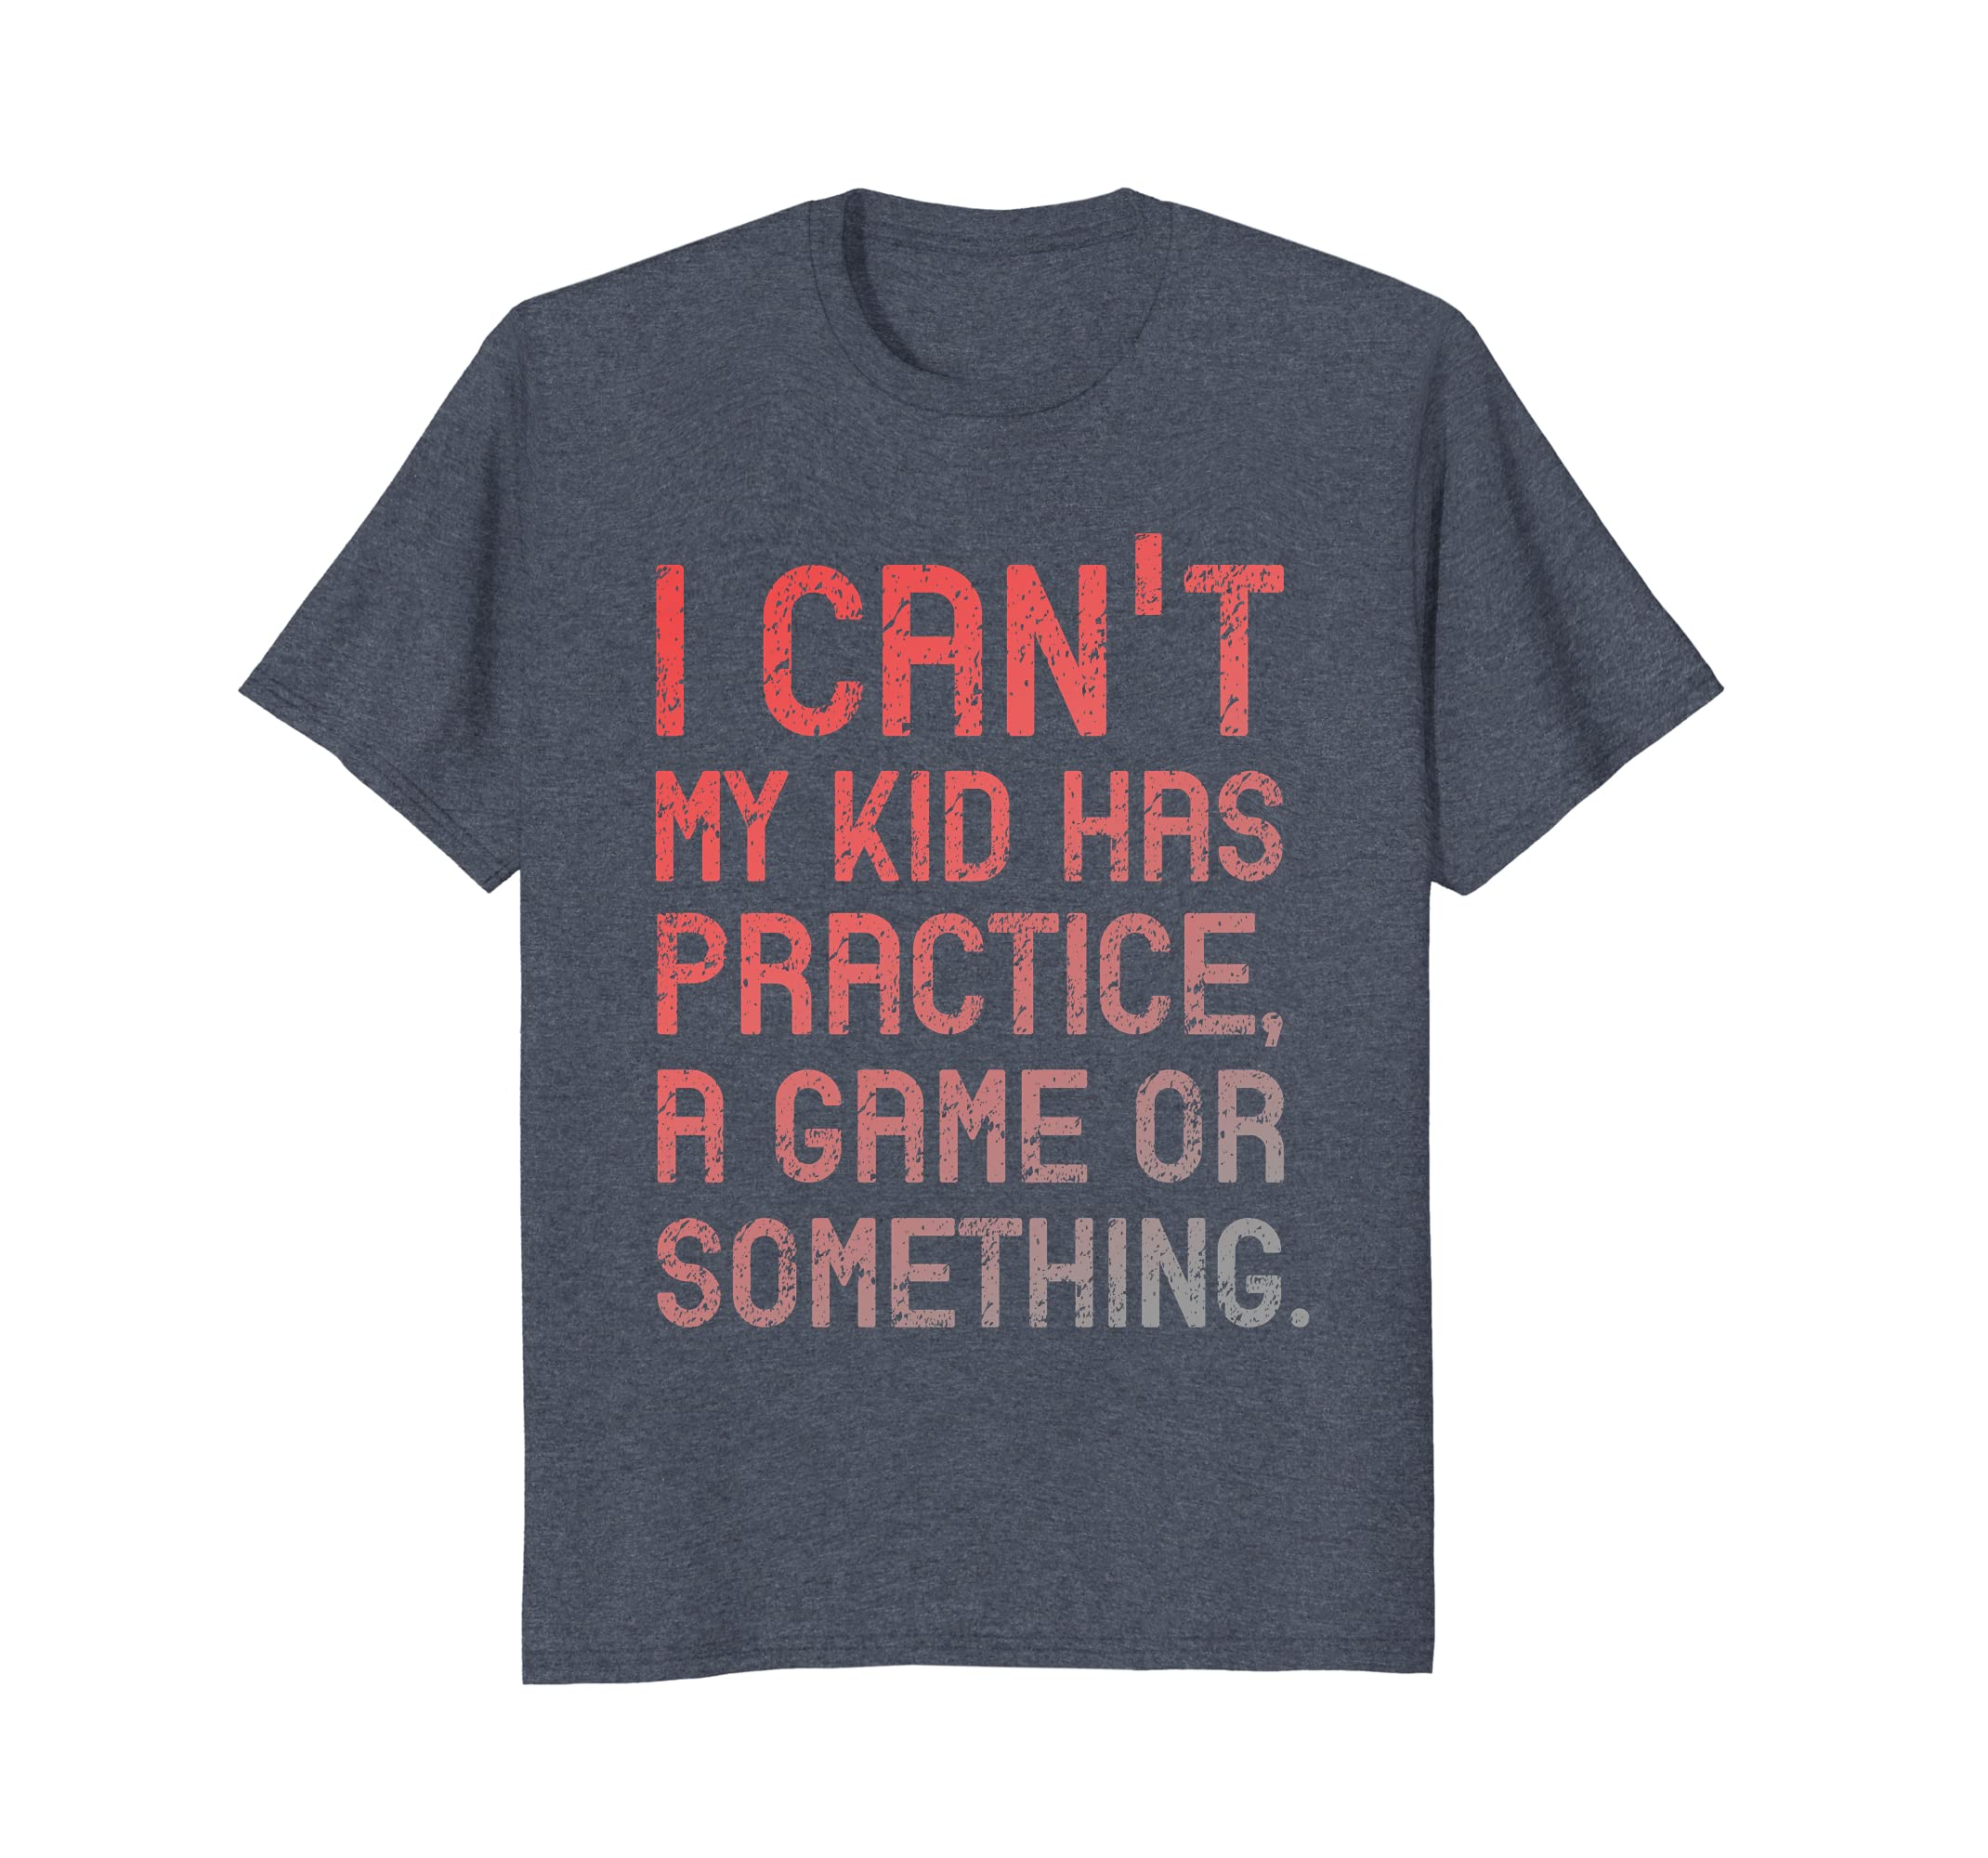 8726687f4 Amazon.com: I Can't My Kid Has Practice, A Game Or Something Tee: Clothing